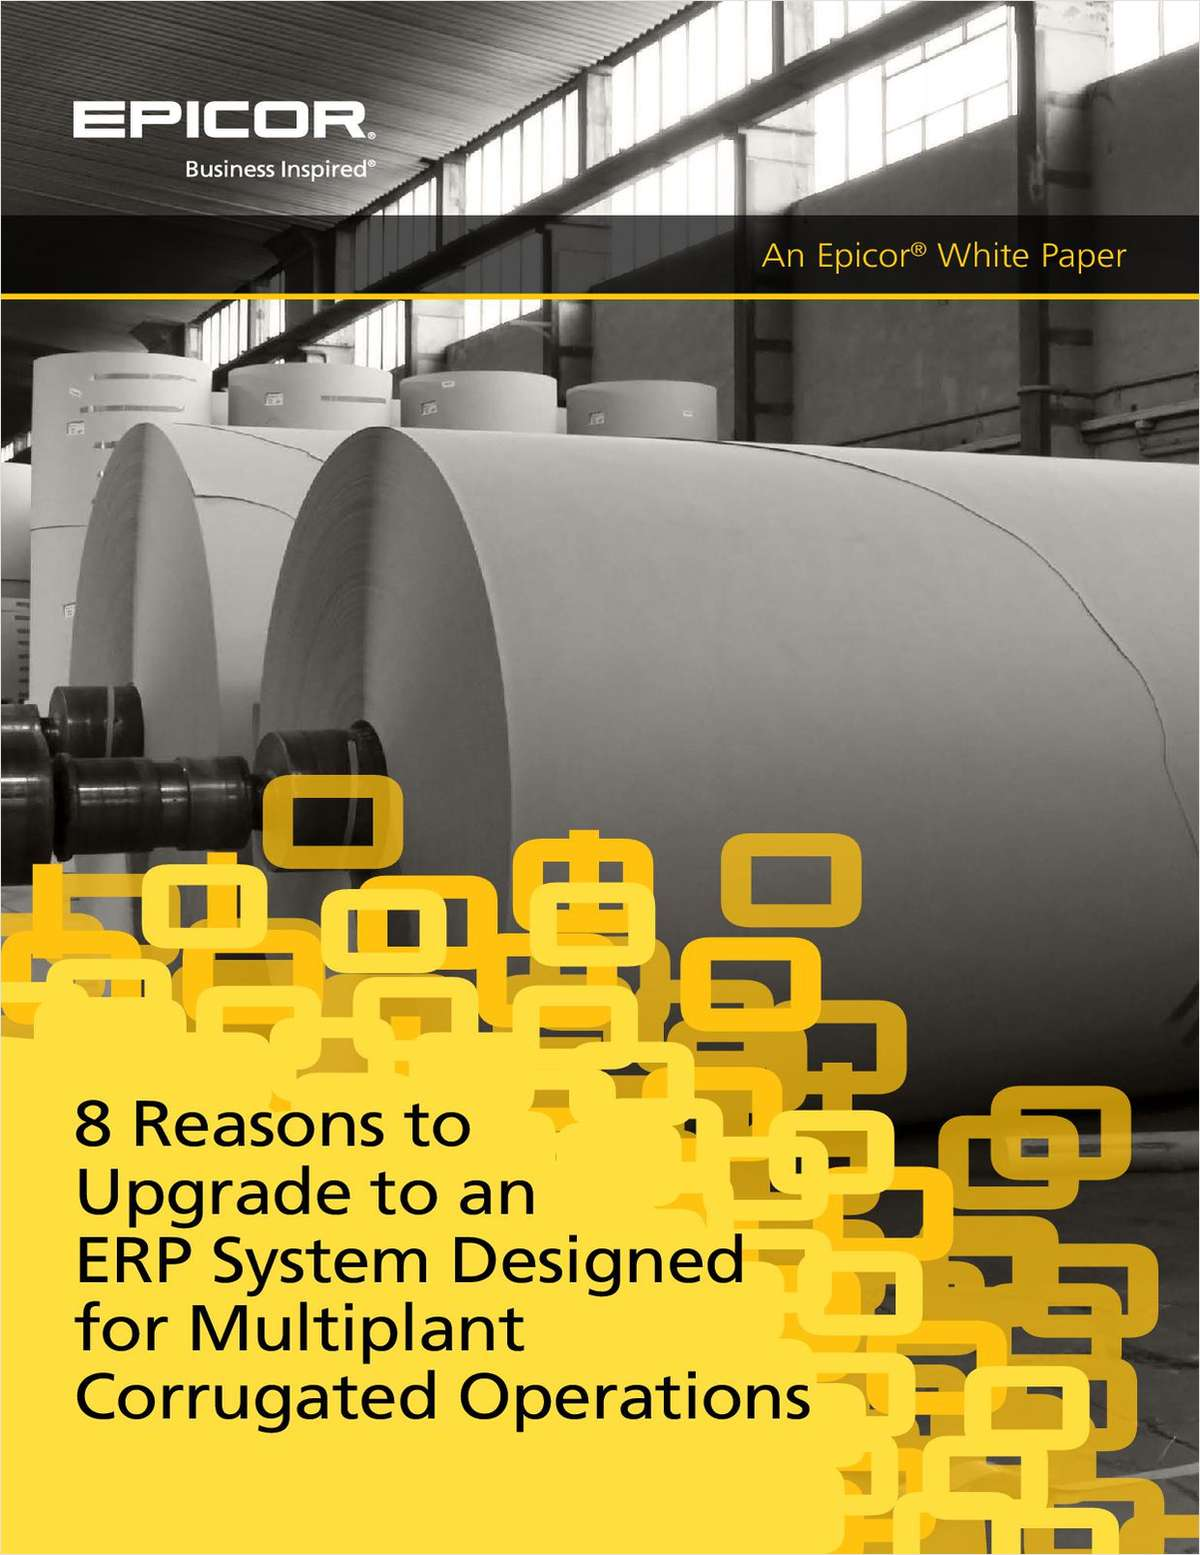 8 Reasons to Upgrade to an ERP System Designed for Multi-plant Corrugated Operations